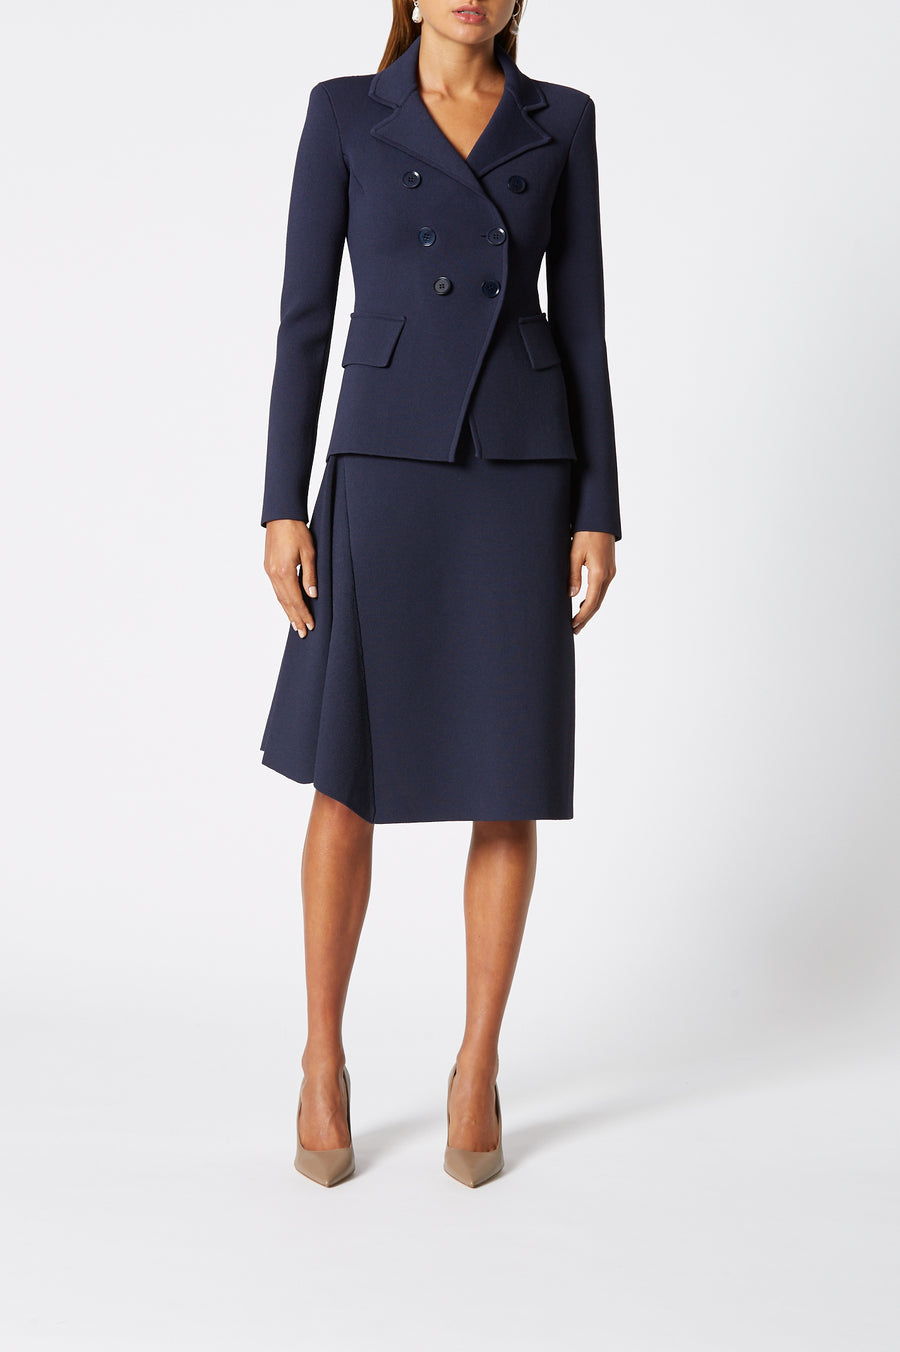 Crepe Knit Panel Skirt, high waisted skirt, panel detail, just below knee and away from the body, color Indigo